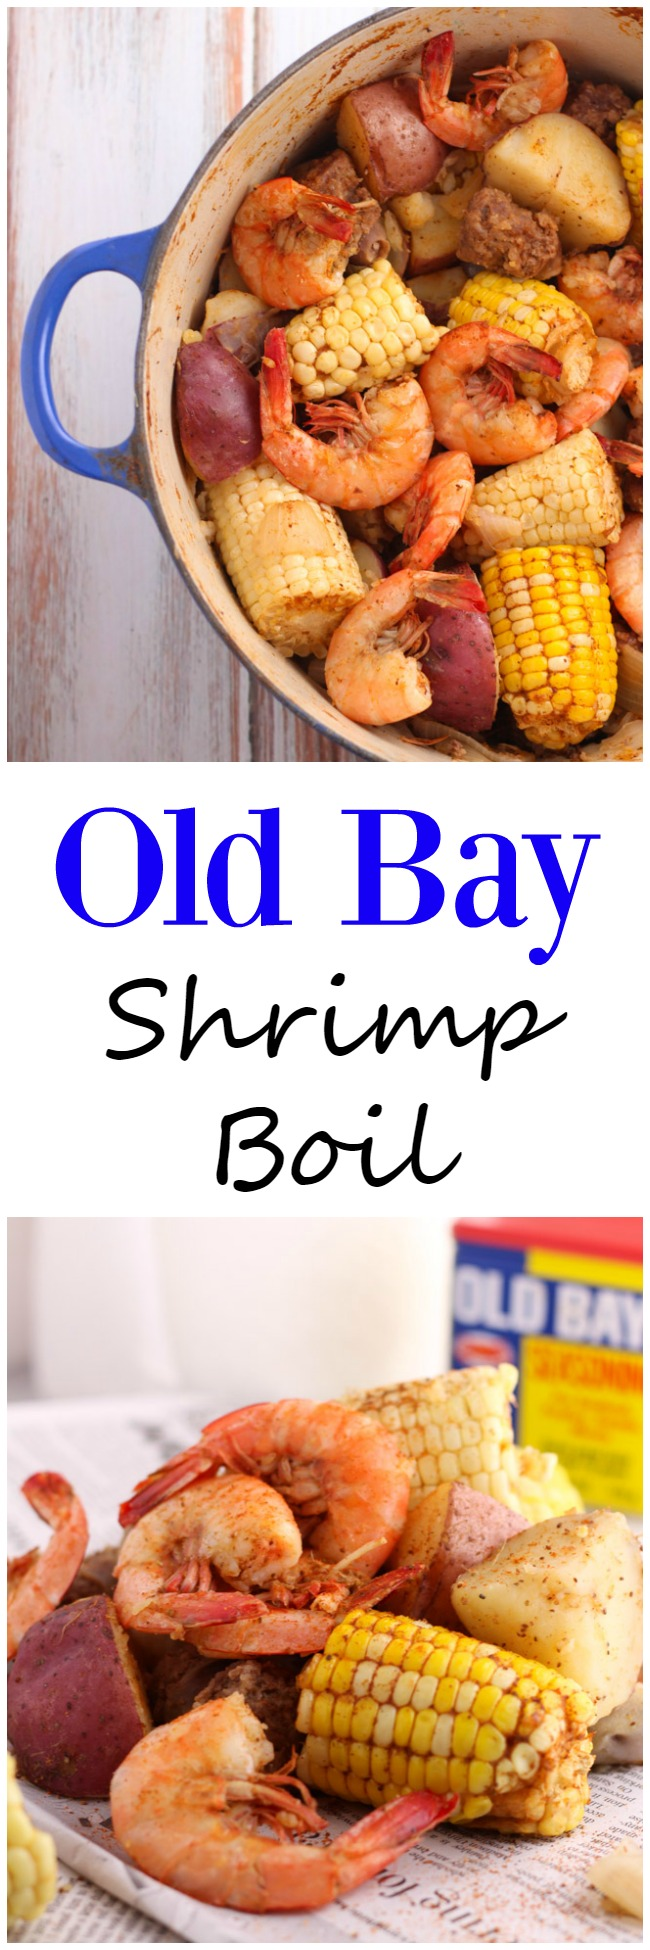 Old_Bay_Shrimp_Boil_Banner